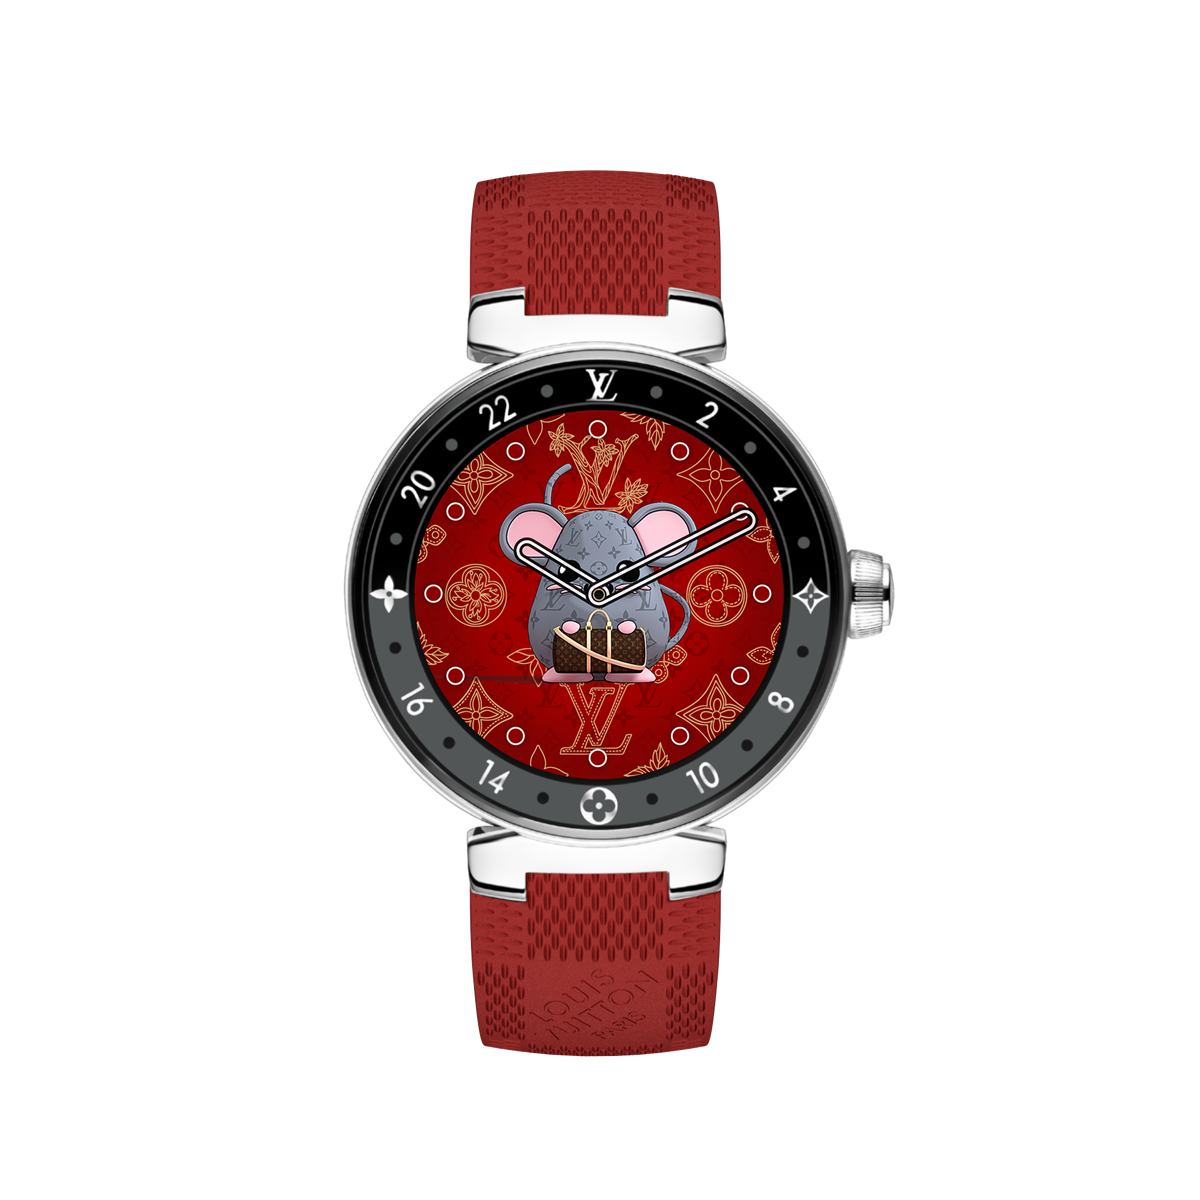 LV_Watches_Tambour Horizon_Chinese New Year 2020 Edition